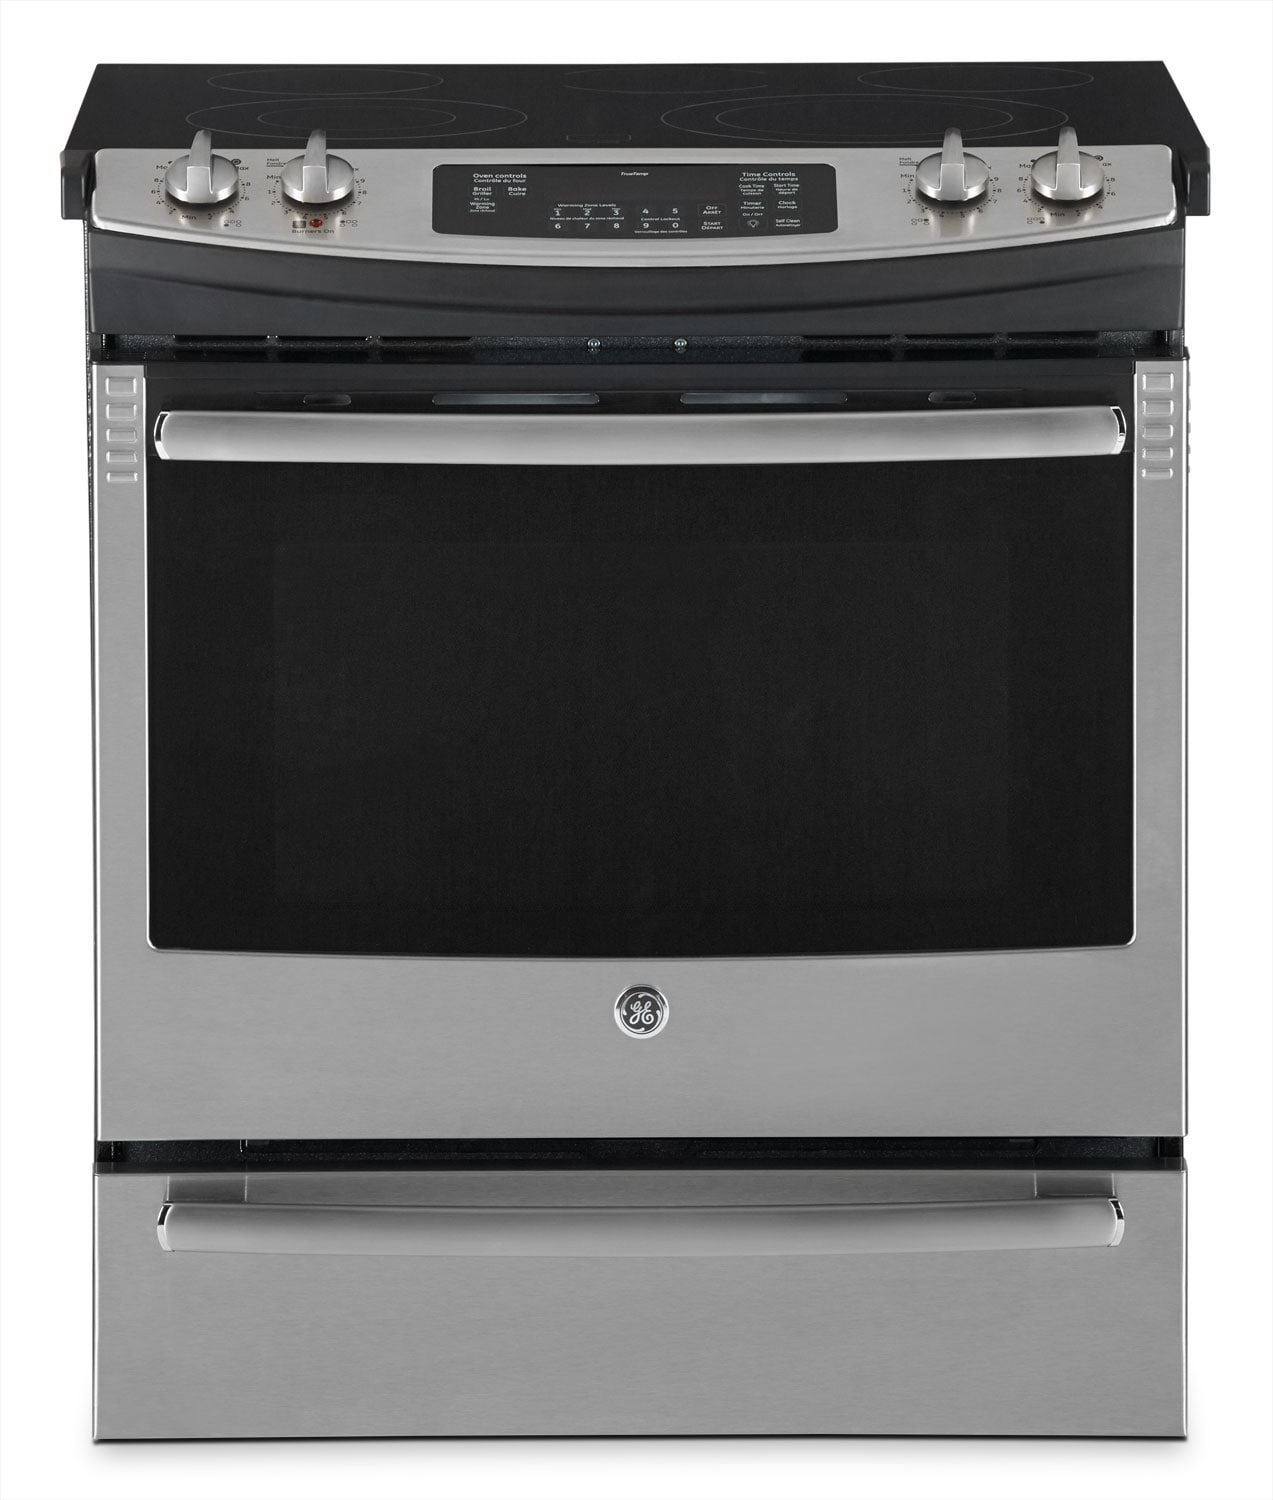 Cooking Products - GE 5.2 Cu. Ft. Slide-In Electric Range – Stainless Steel